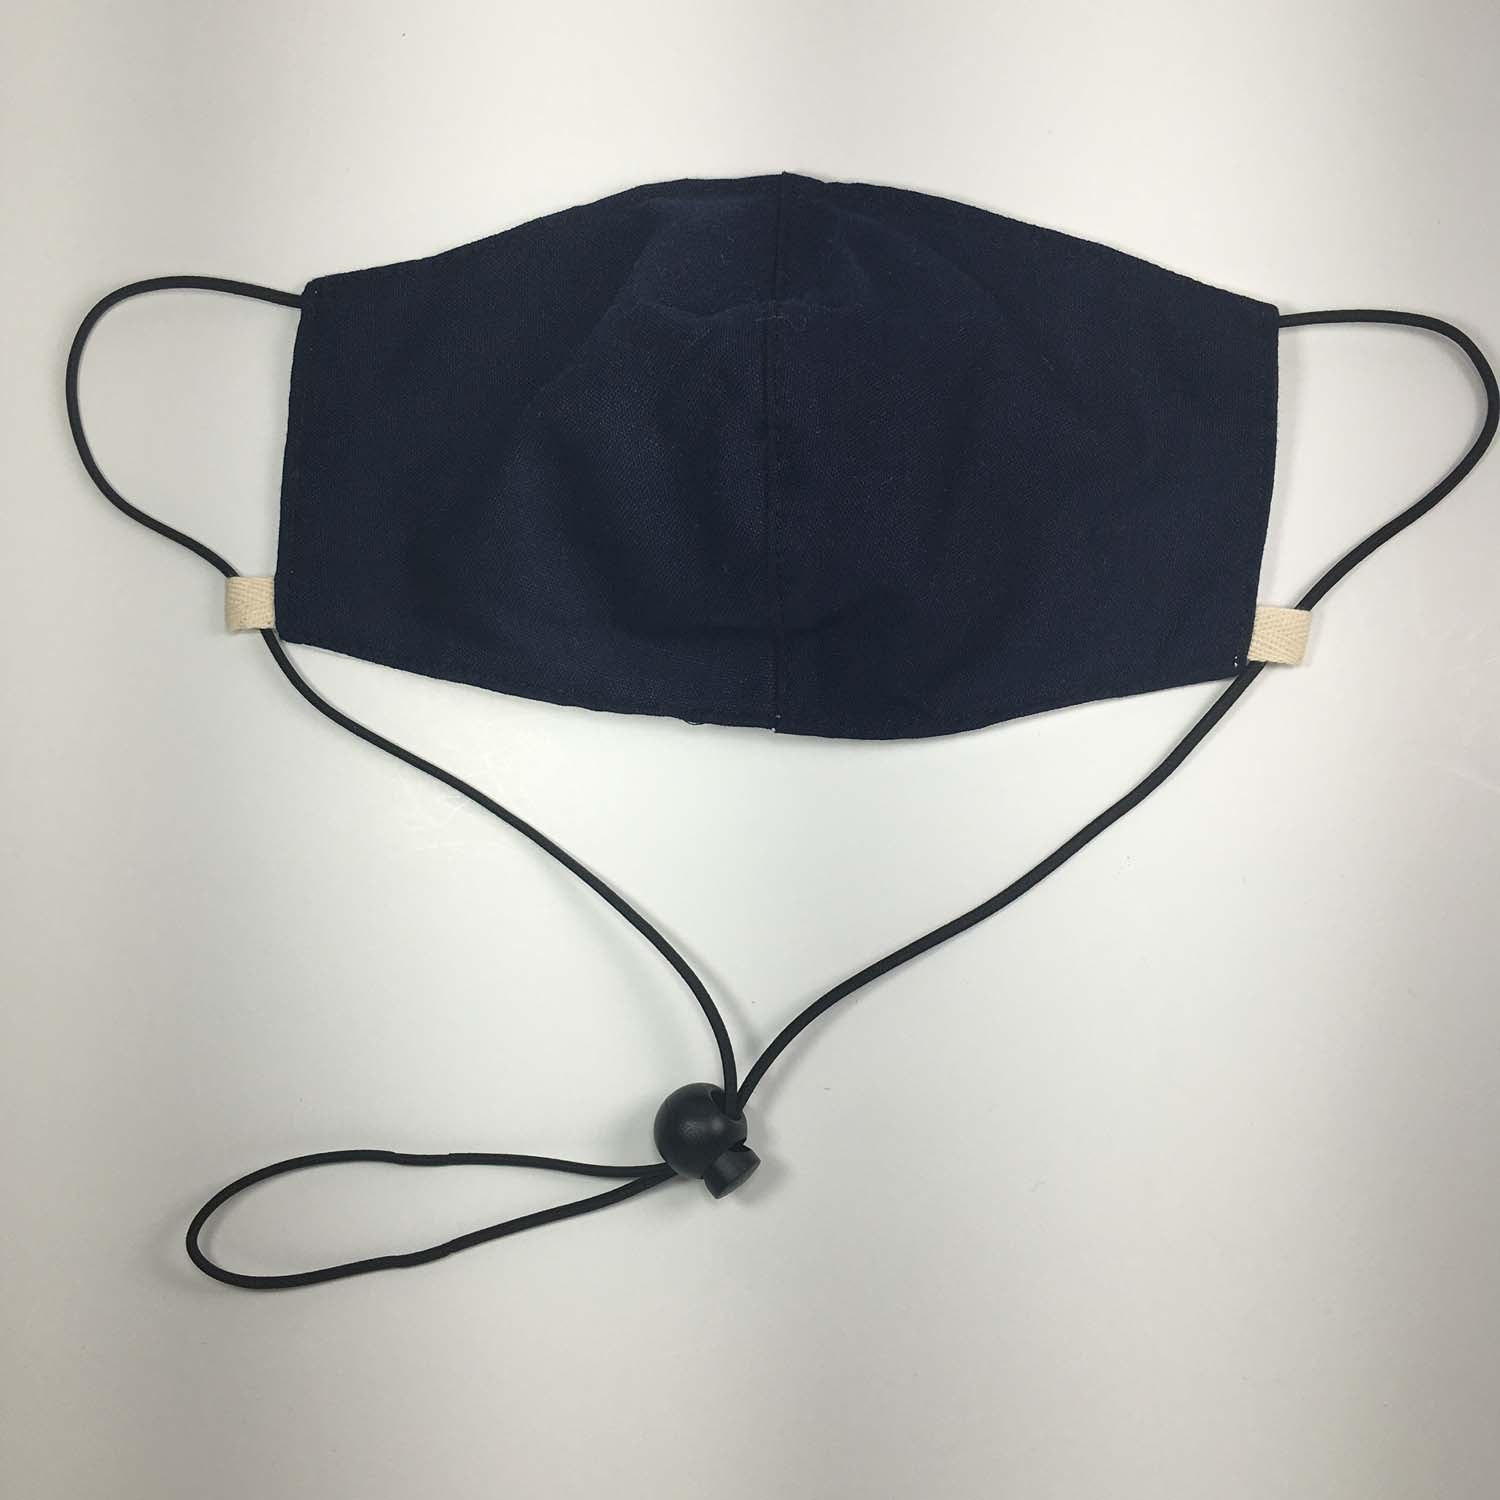 MEDIUM Oxford Cotton Adjustable Face Masks Filter Pocket - Navy